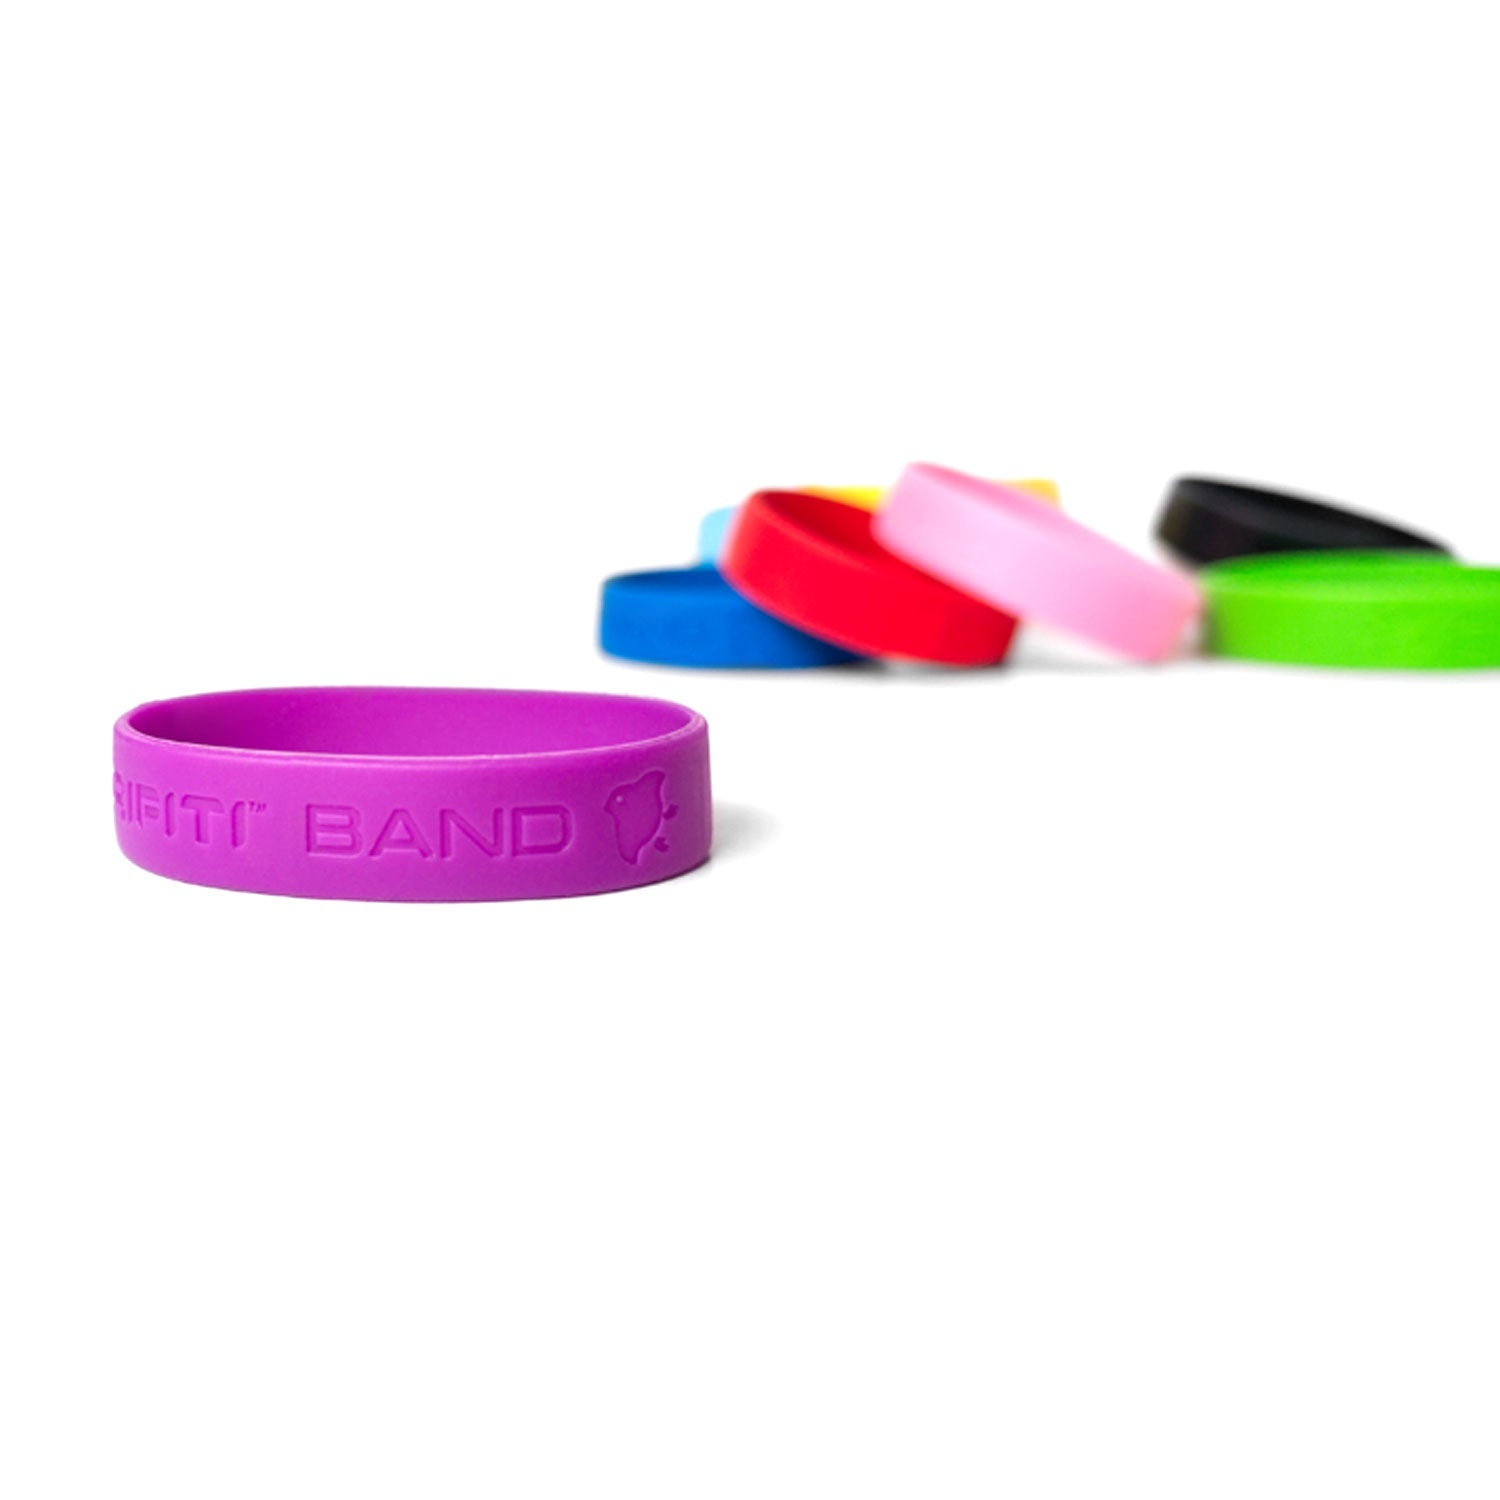 Grifiti Band Joes 4 x 0.75 inch Standard Silicone Bands Wrist Box Cook Cards - Grifiti